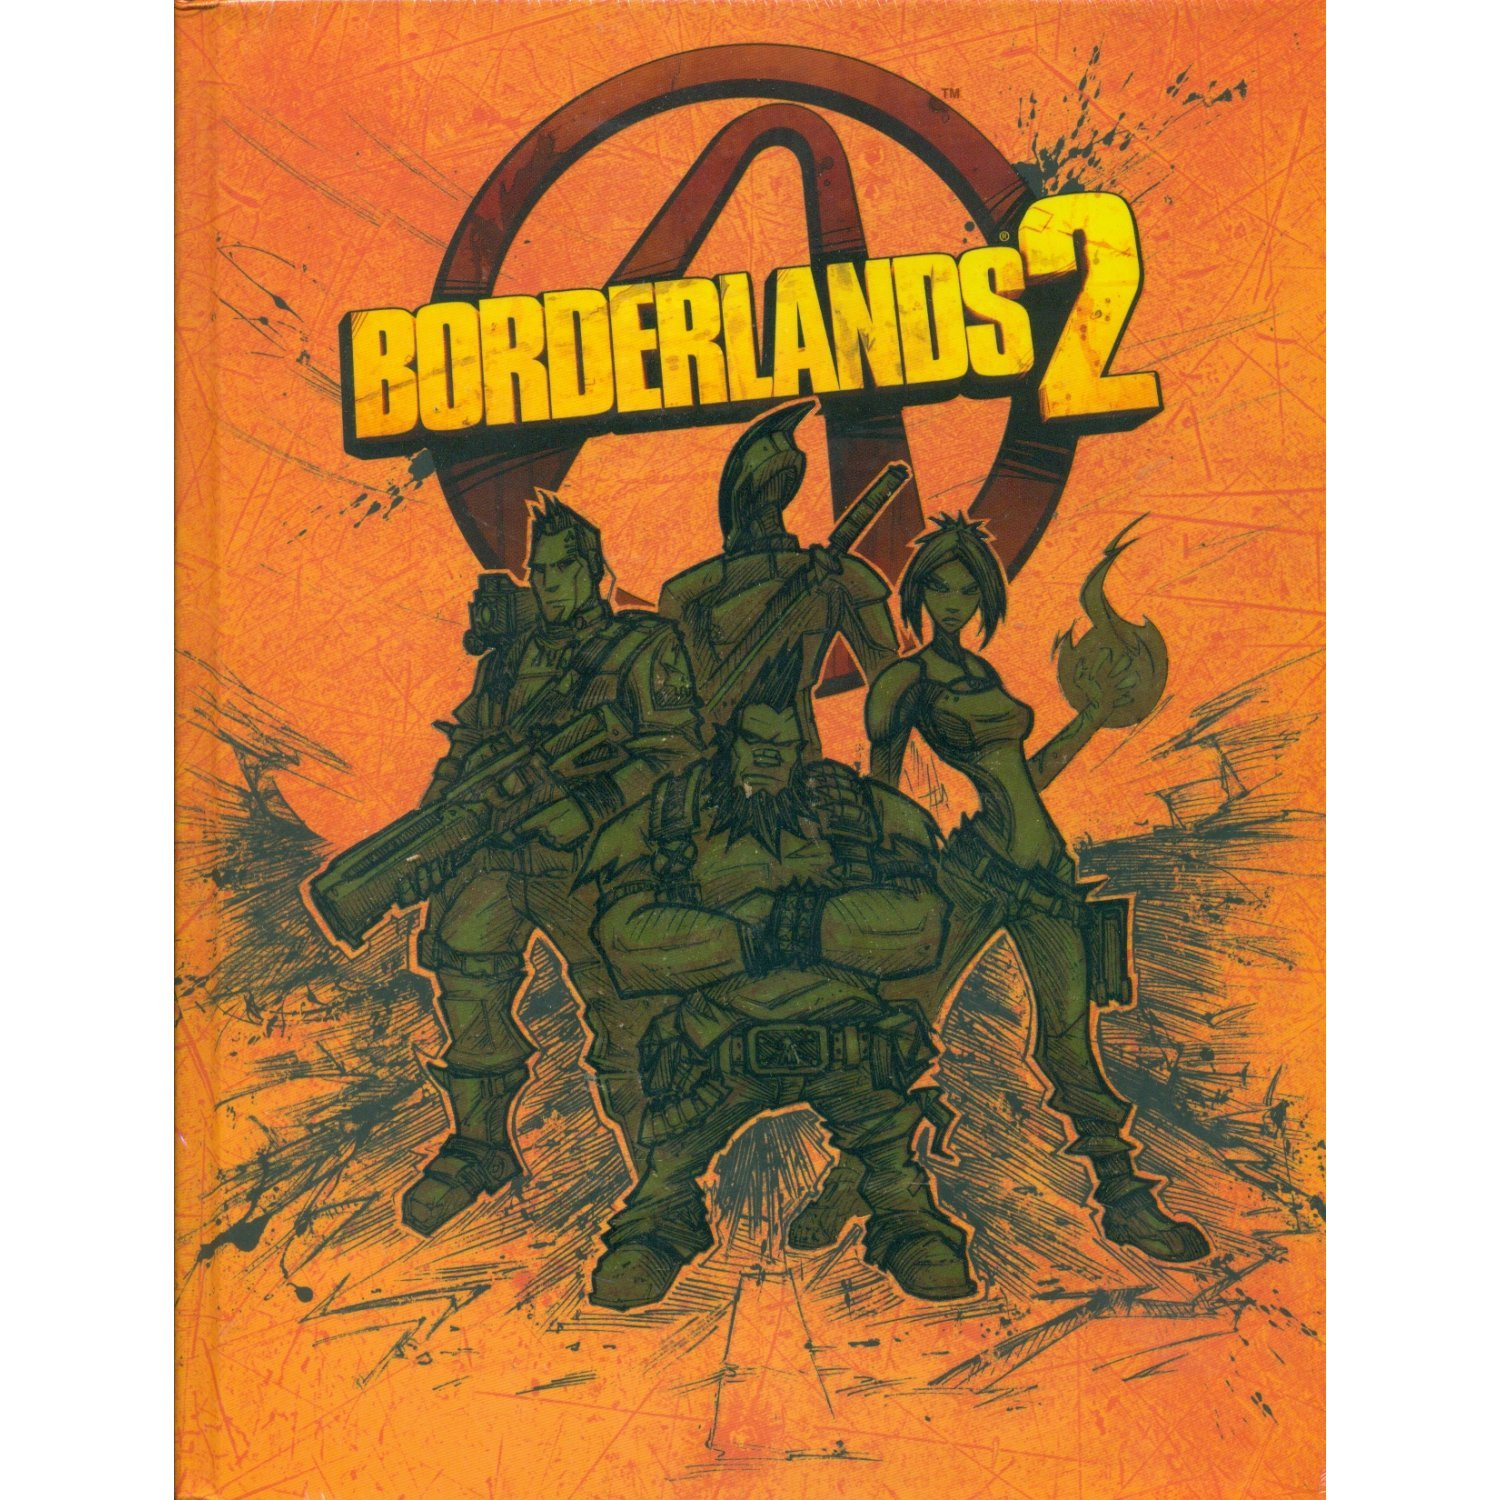 High-quality borderlands 2 limited edition strategy guide.